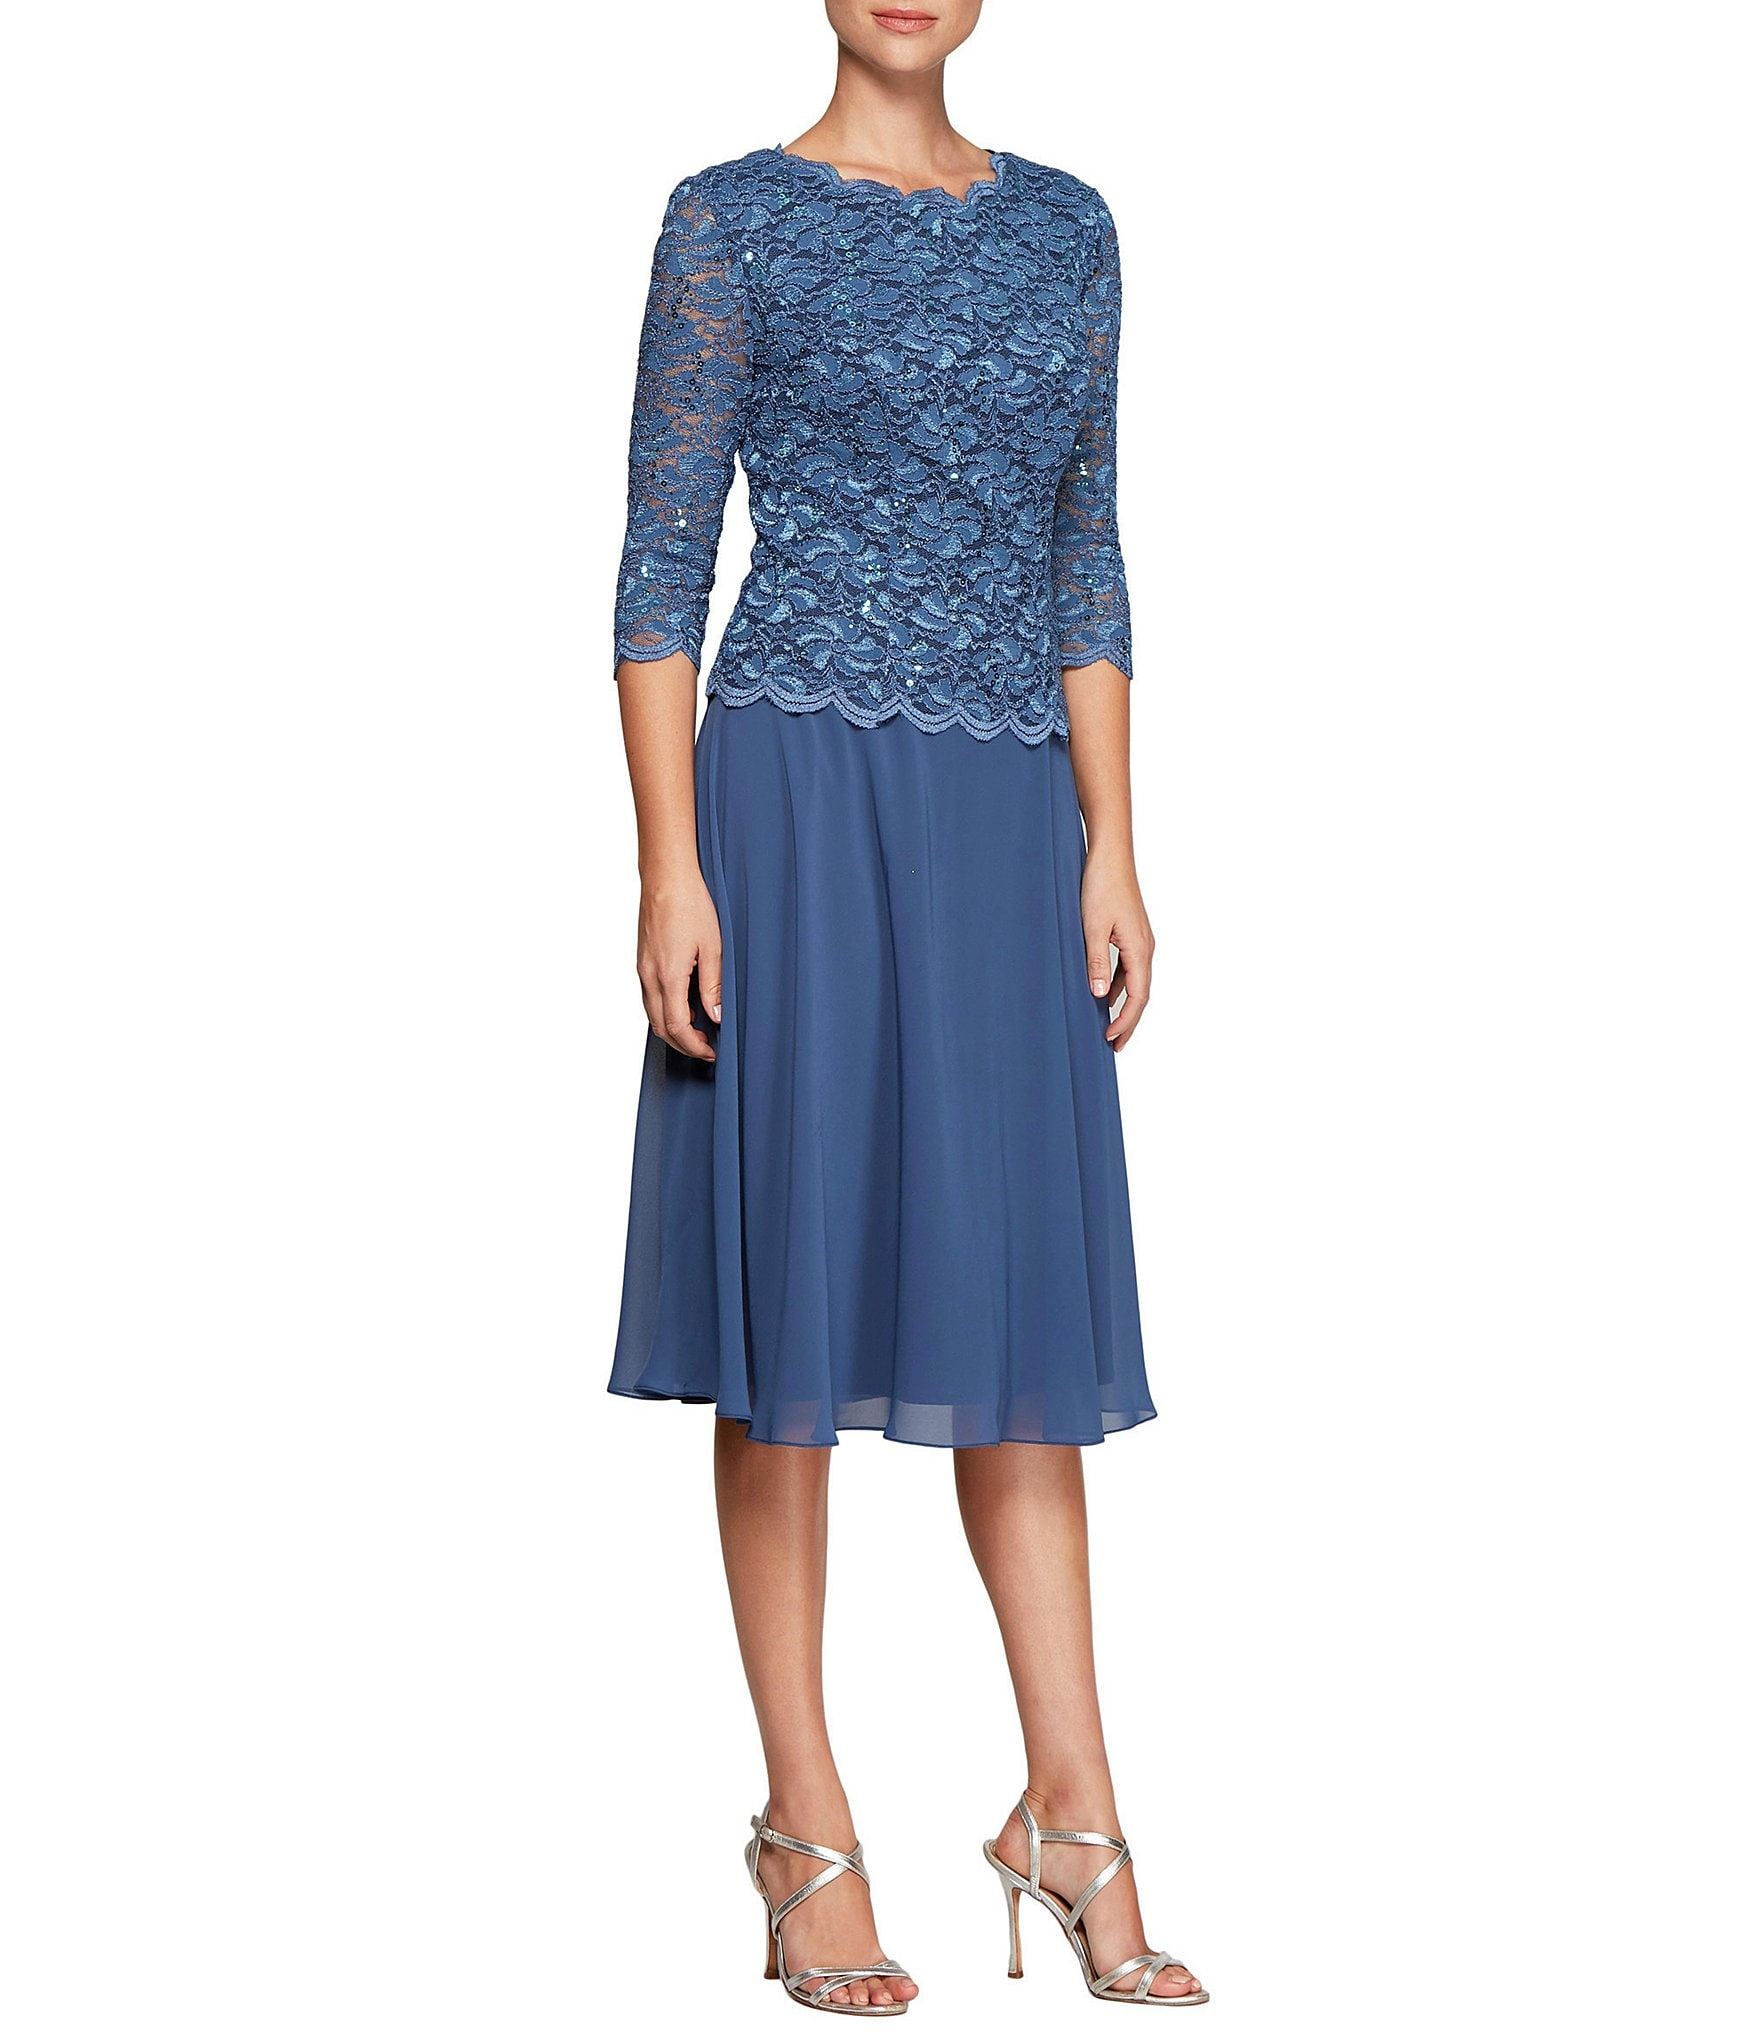 Blue lace dresses for juniors